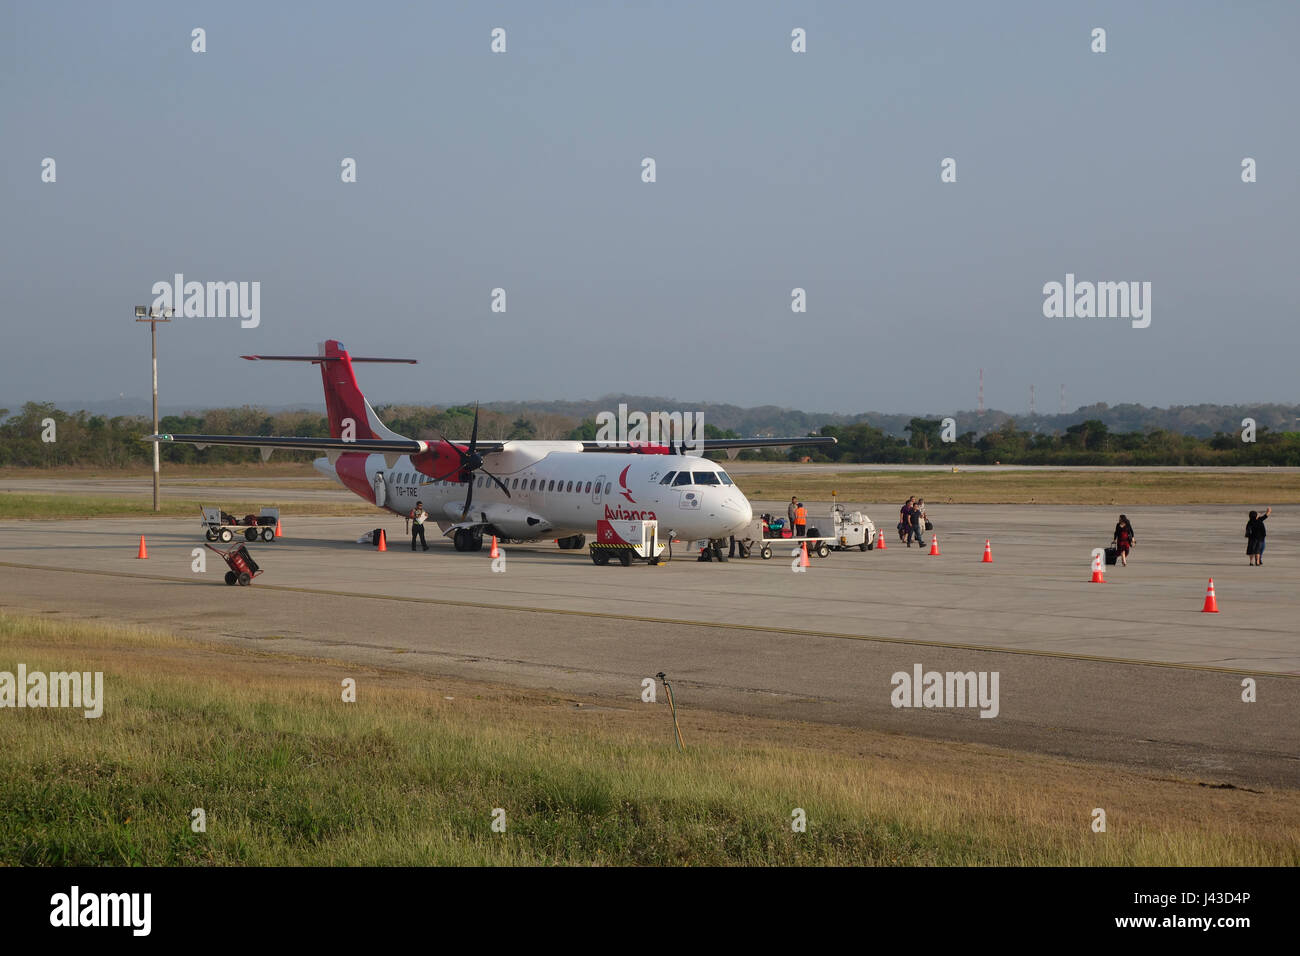 An ATR 72 twin-engine turboprop short-haul regional airliner manufactured by the French-Italian aircraft manufacturer - Stock Image